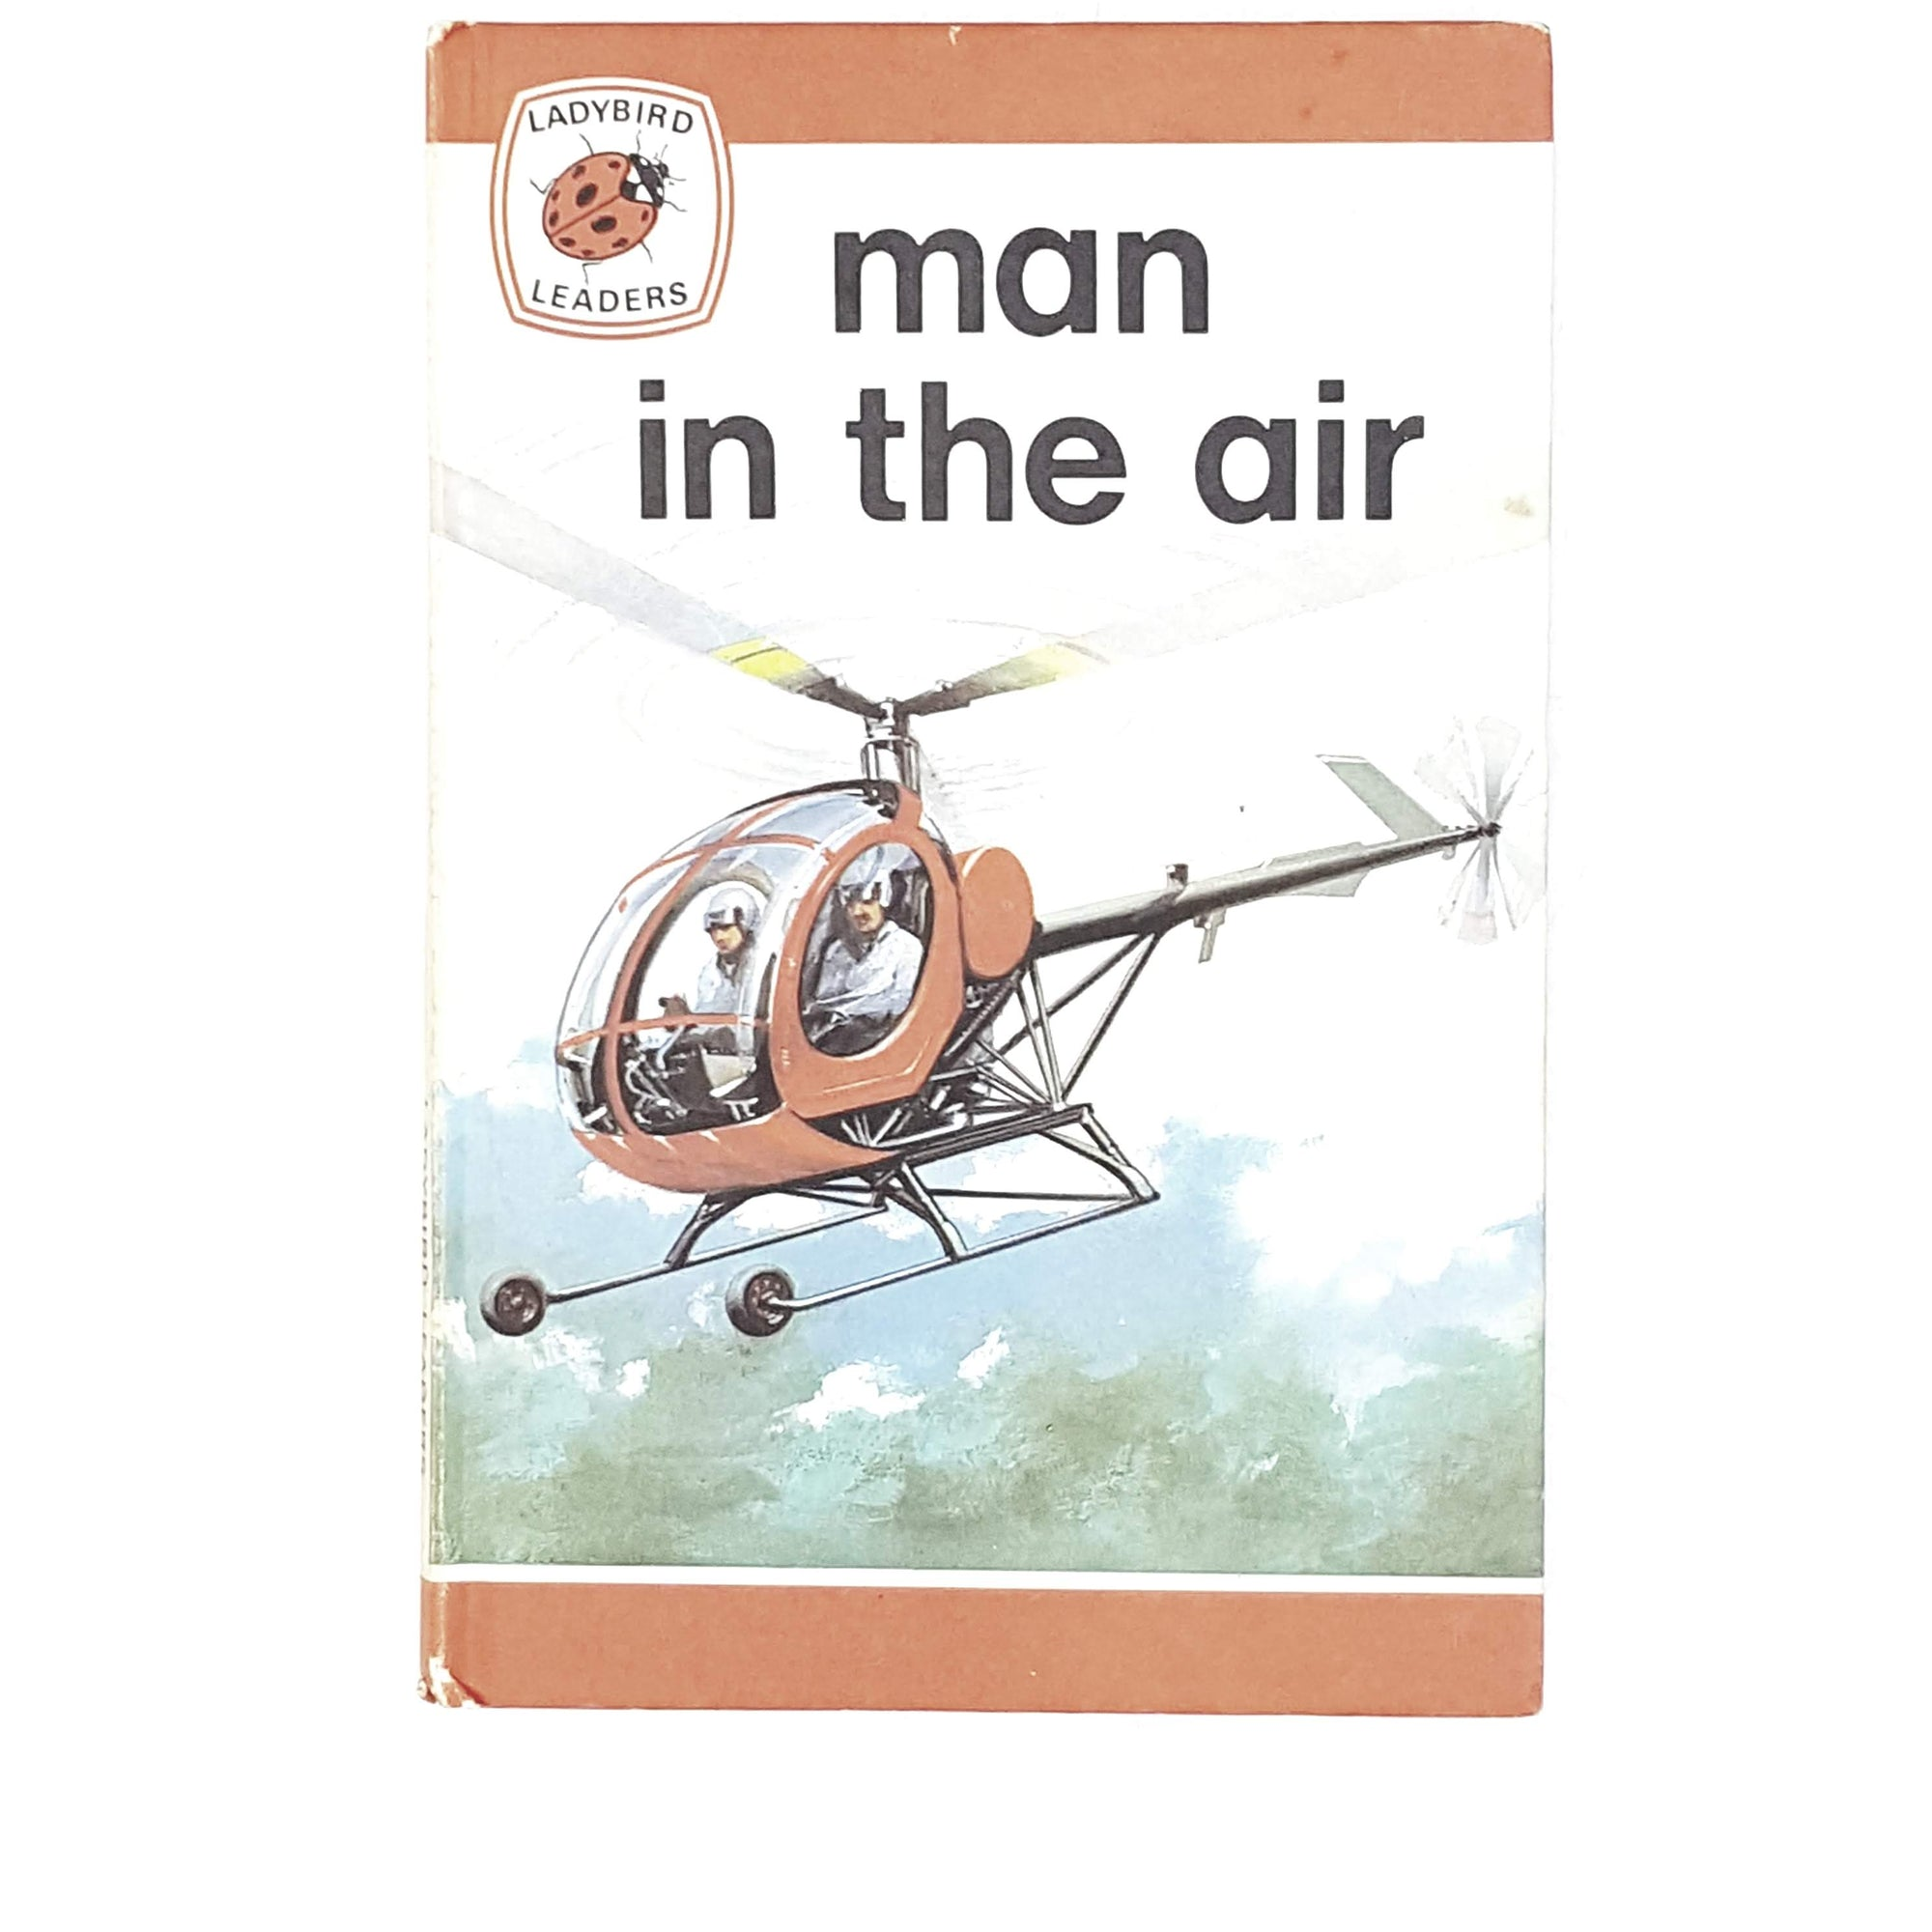 Ladybird Leaders: Man in the Air 1973